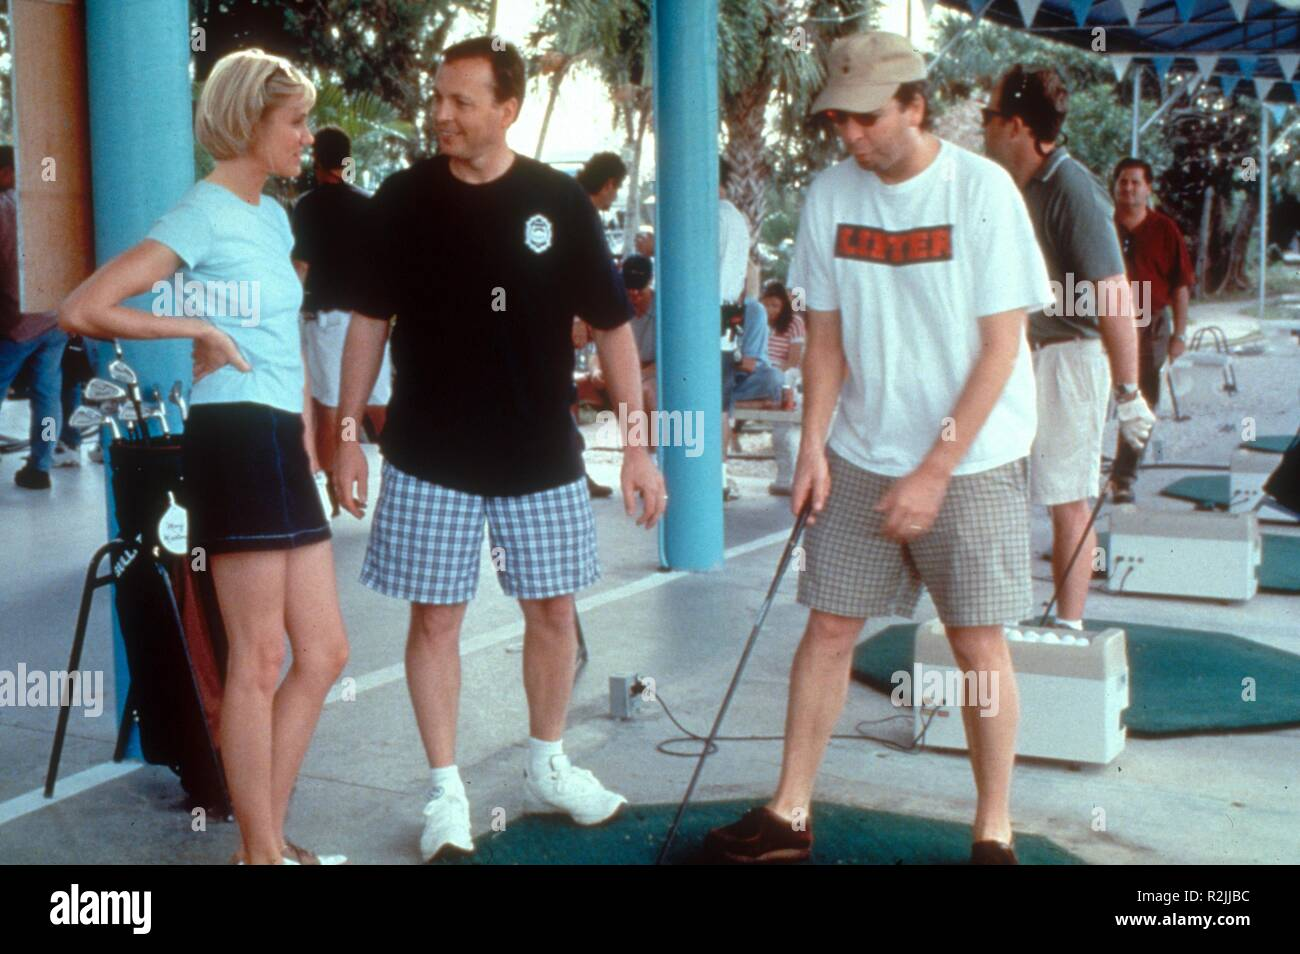 There's Something About Mary  Year : 1998  USA Director : Bobby Farrelly, Peter Farrelly Cameron Diaz, Bobby Farrelly and Peter Farrelly Shooting picture - Stock Image